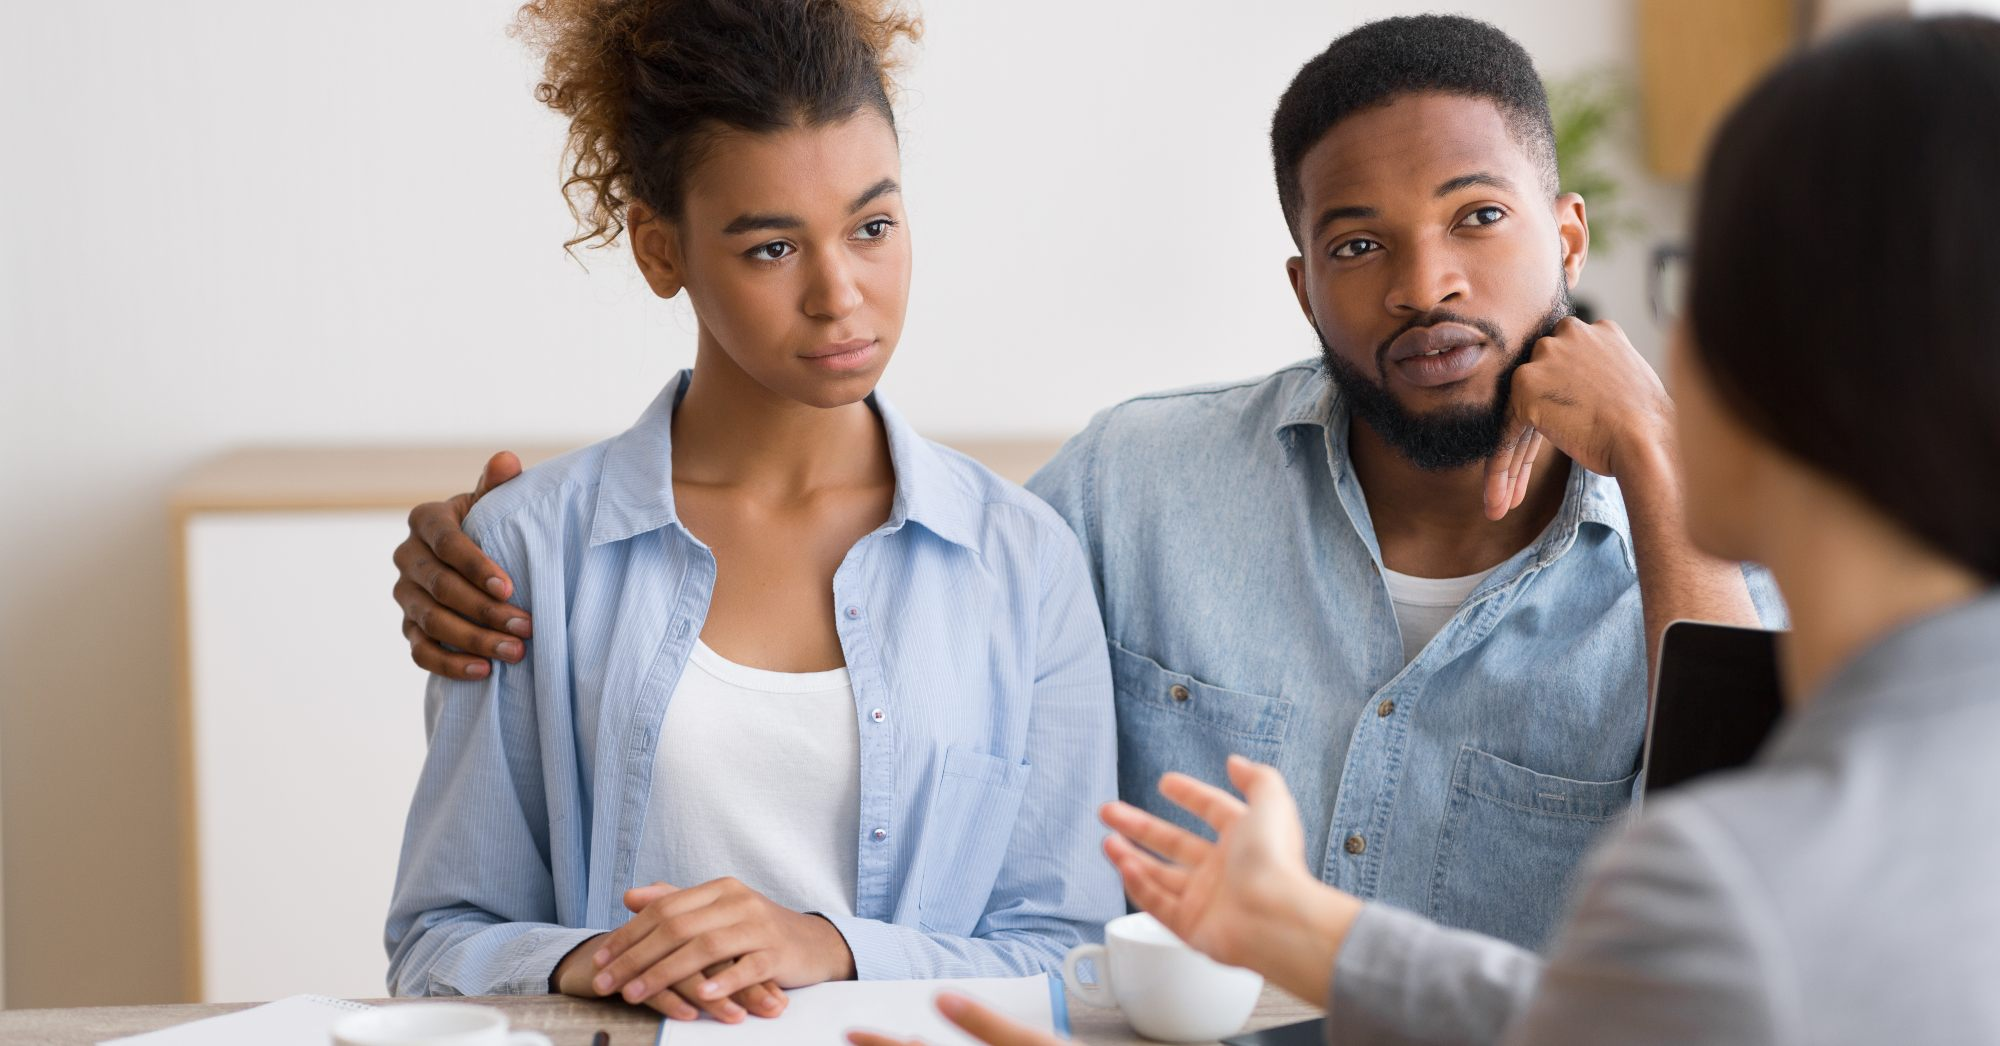 First-time homebuyer couple speaking with a financial advisor on using their 401(k) to buy a home.